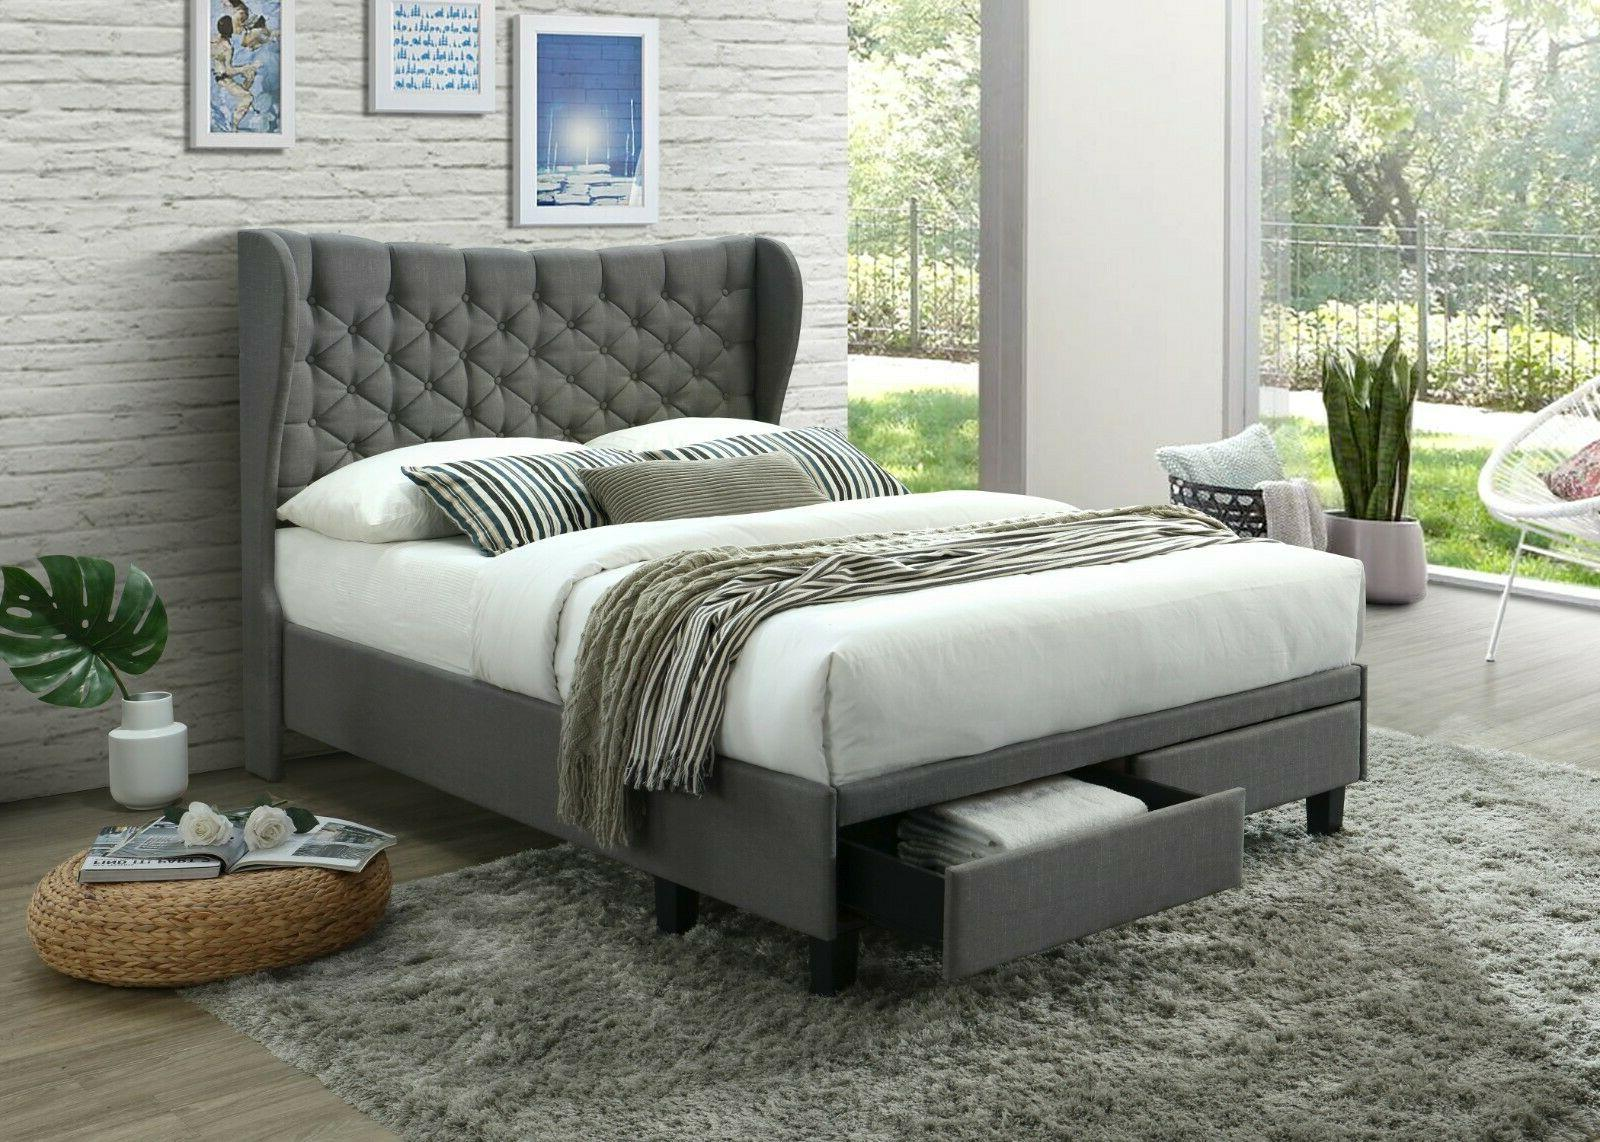 upholstered cloth platform bed with headboard